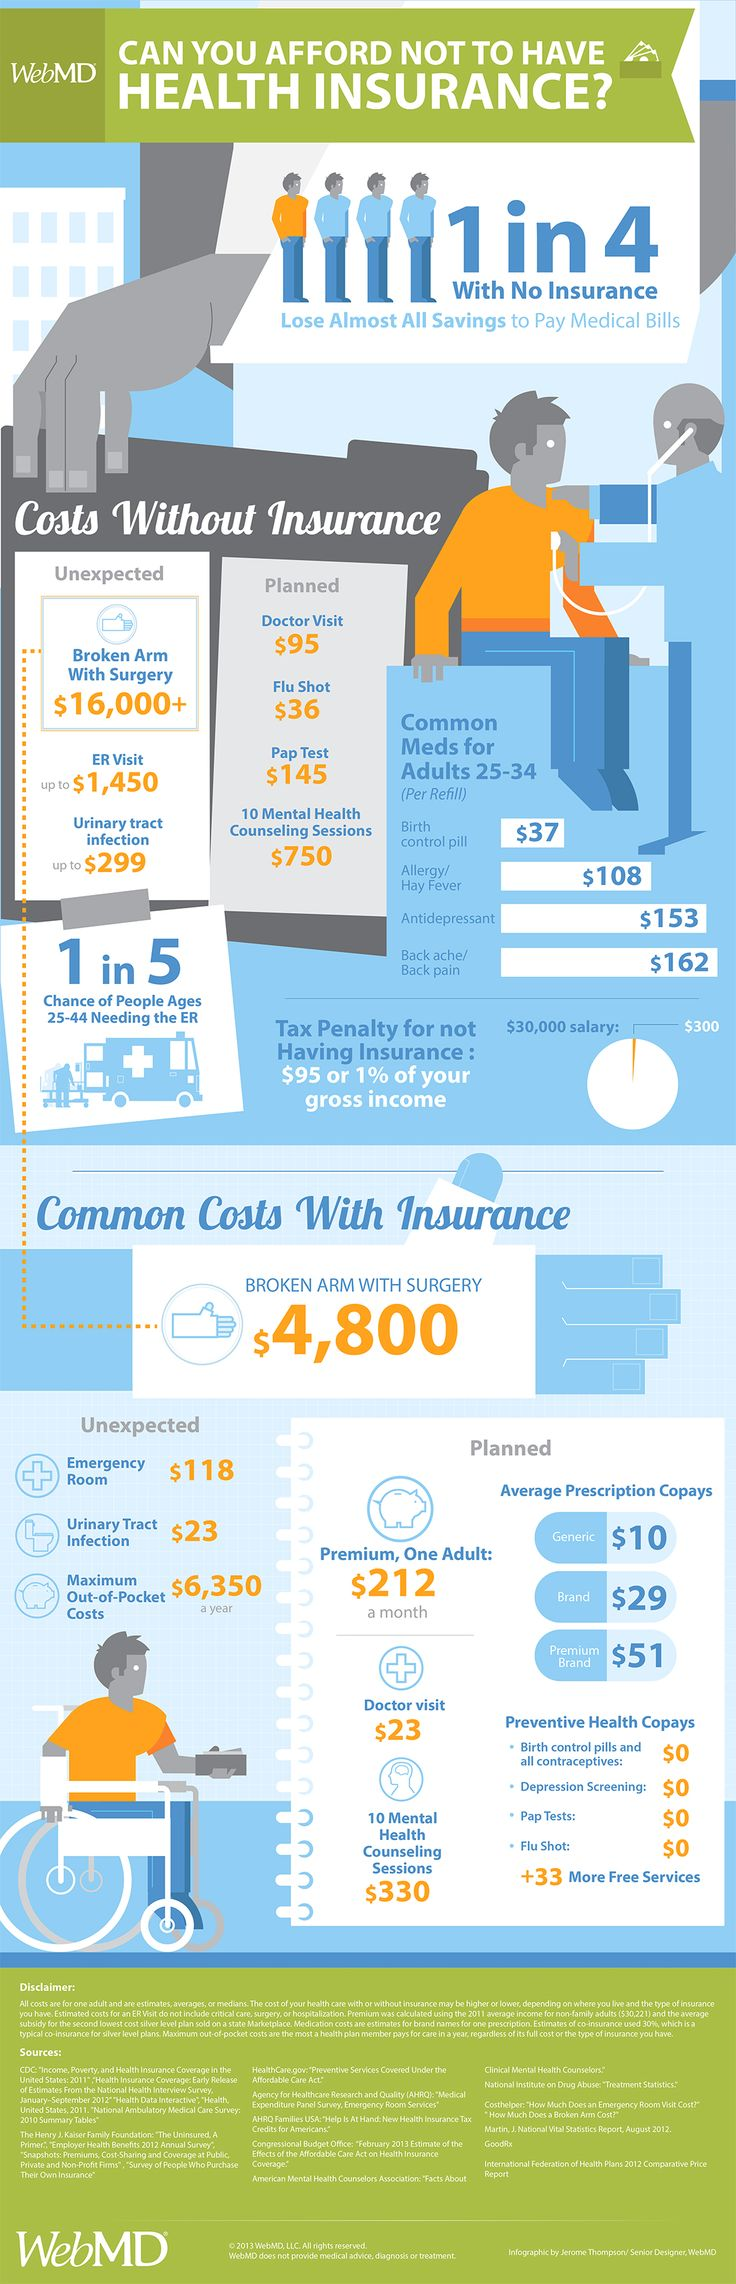 Online Health Insurance Quotes Best 25 Health Insurance Ideas On Pinterest  Business Health